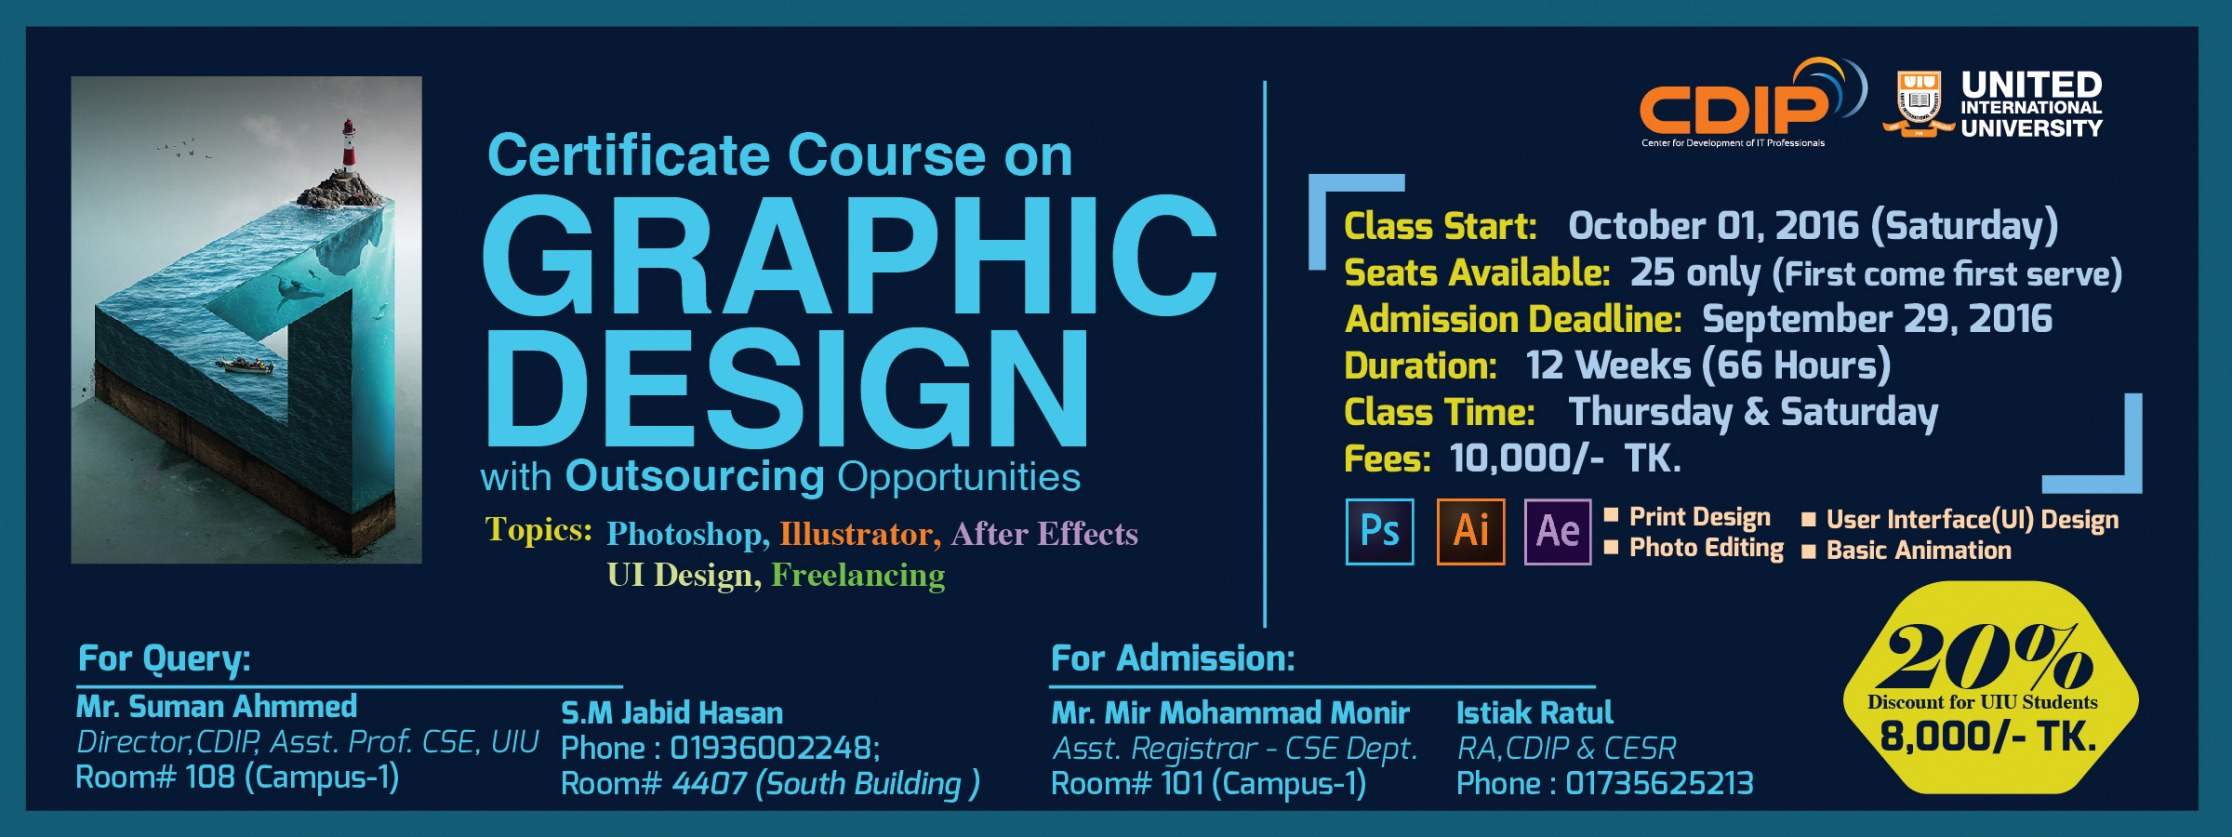 graphic design certificate course ppt